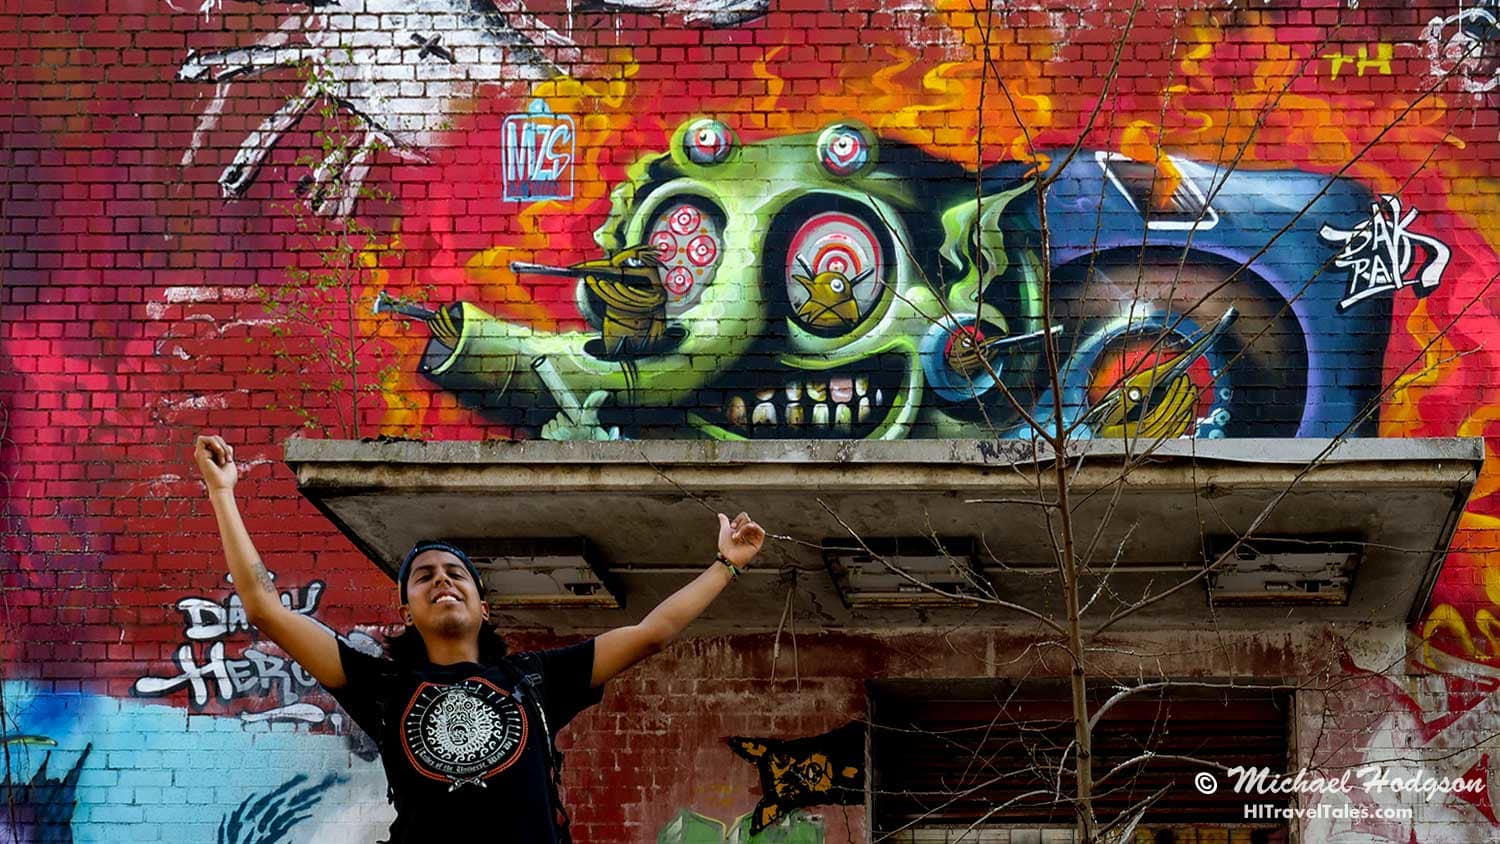 Meeting street artists is a real treat you can experience at Teufelsberg. Here, we talked with DakPak from Mexico who had just completed the work you see here.